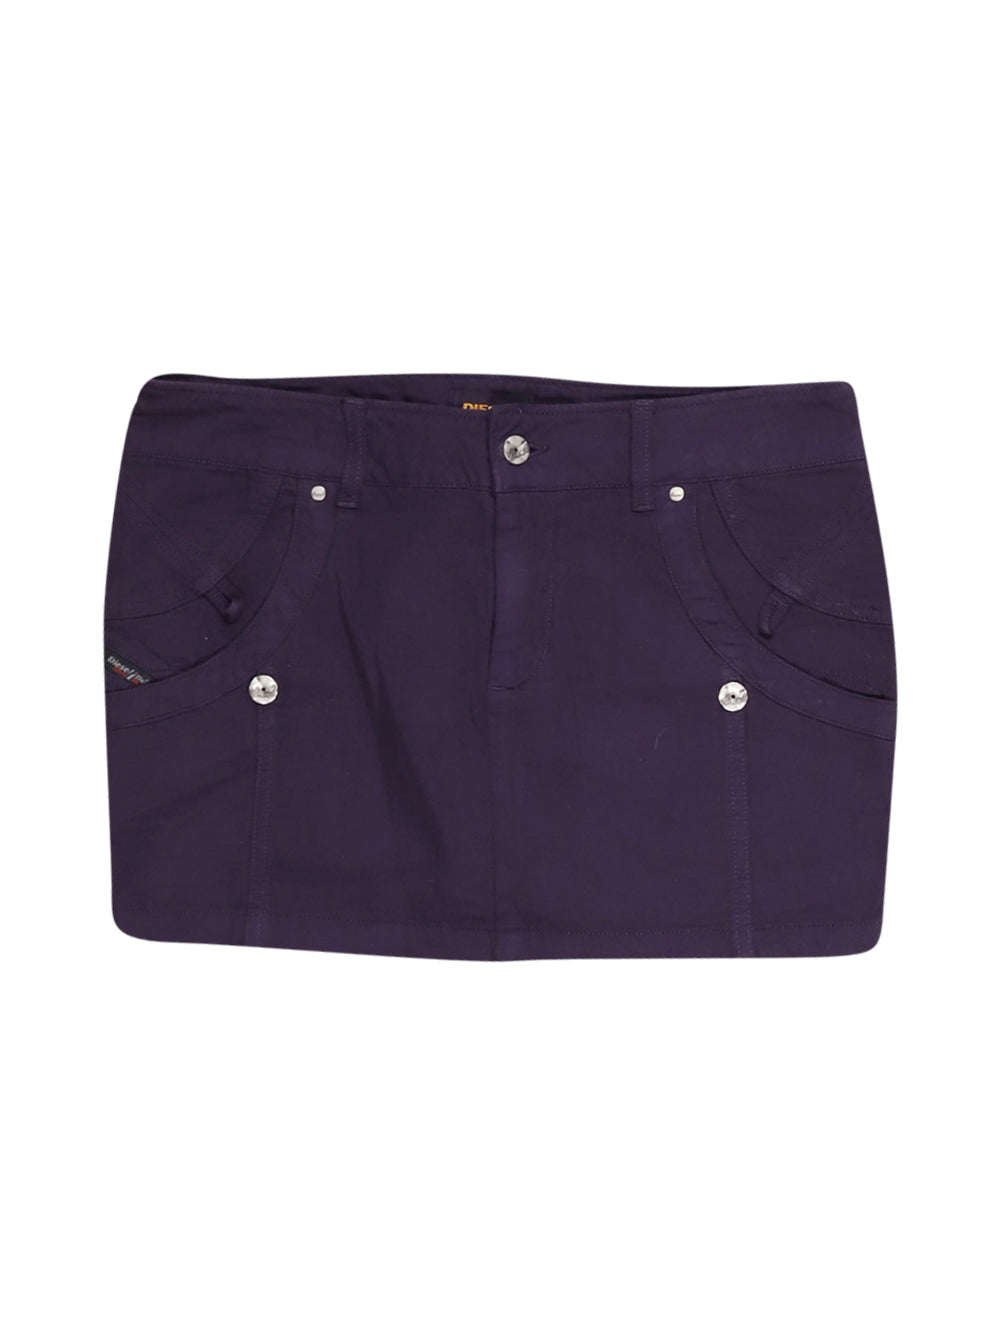 Front photo of Preloved Diesel Violet Woman's skirt - size 12/L